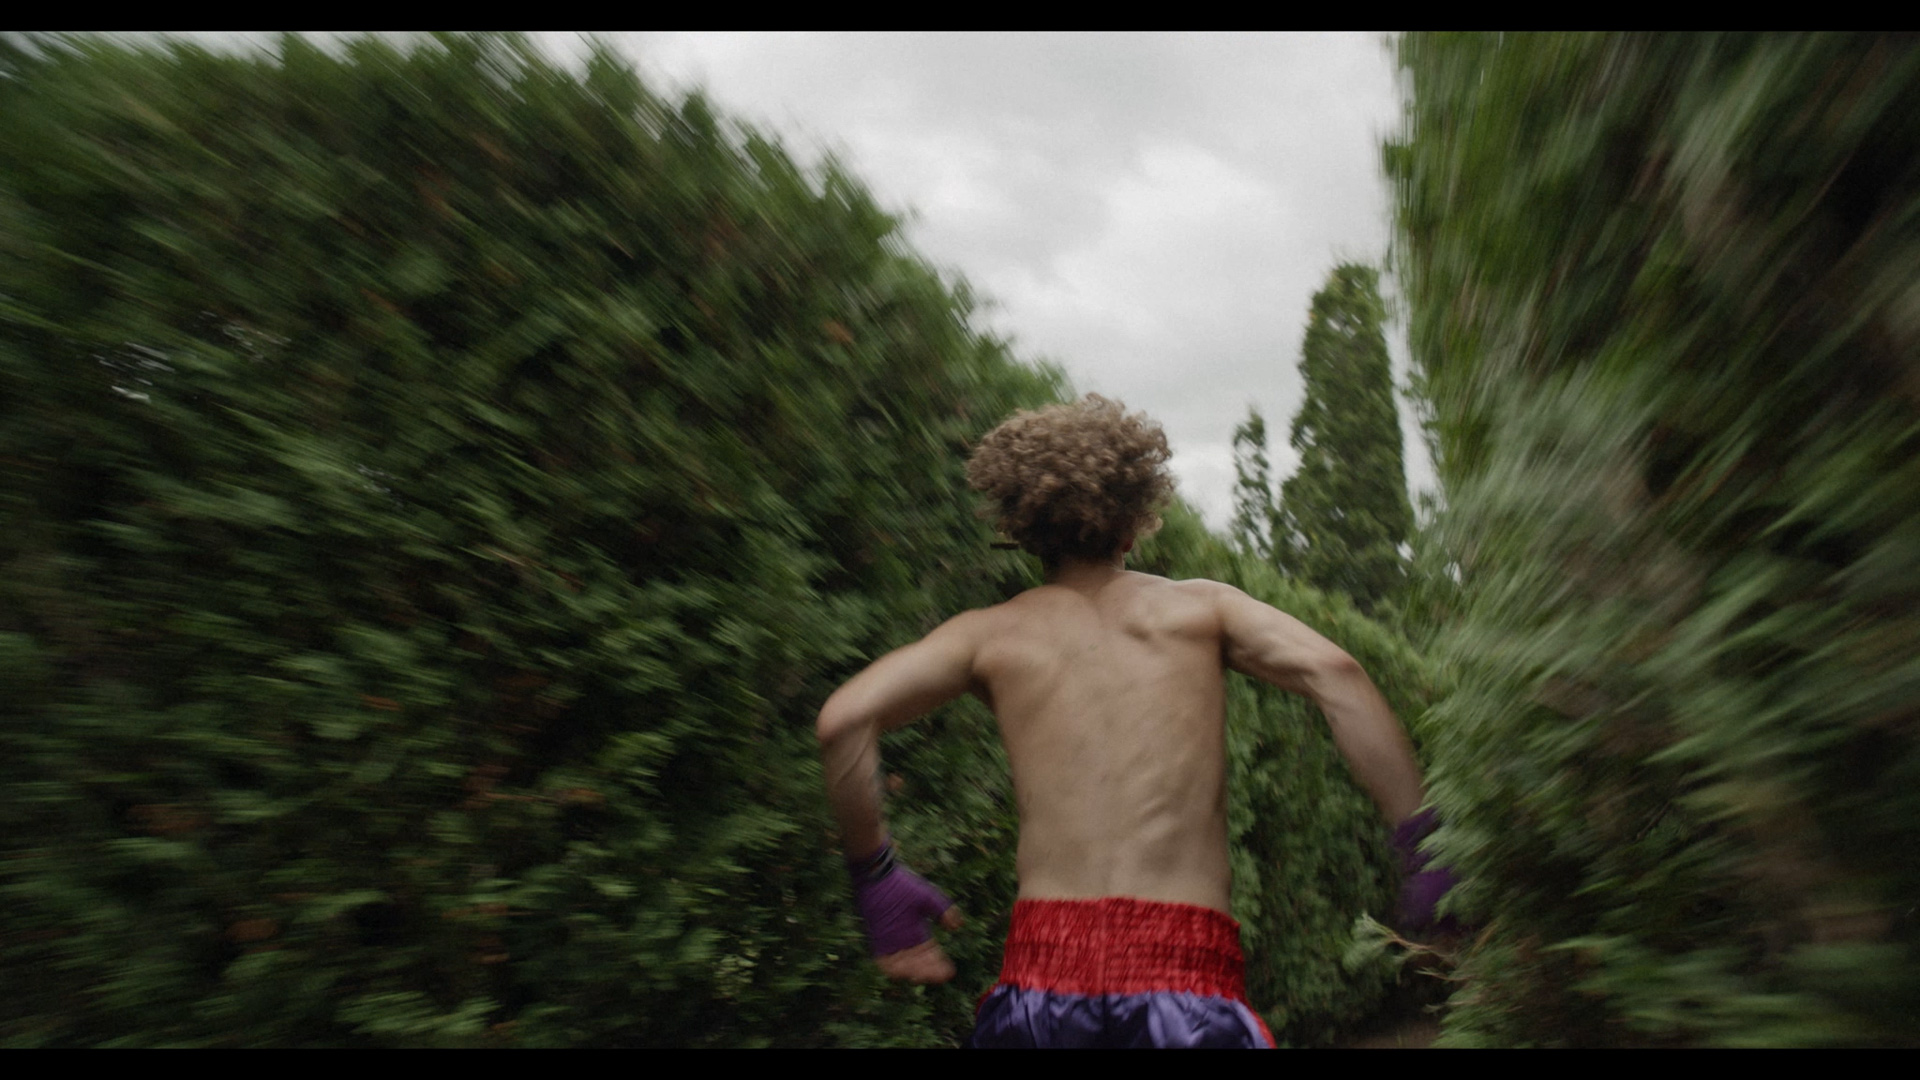 actor running in a vegetal labyrinth in boxing gear looking beaten up and panicked for Alaclair Ensemble hip hop collective music video Felix filmed by Les Gamins featuring rapper Souldia